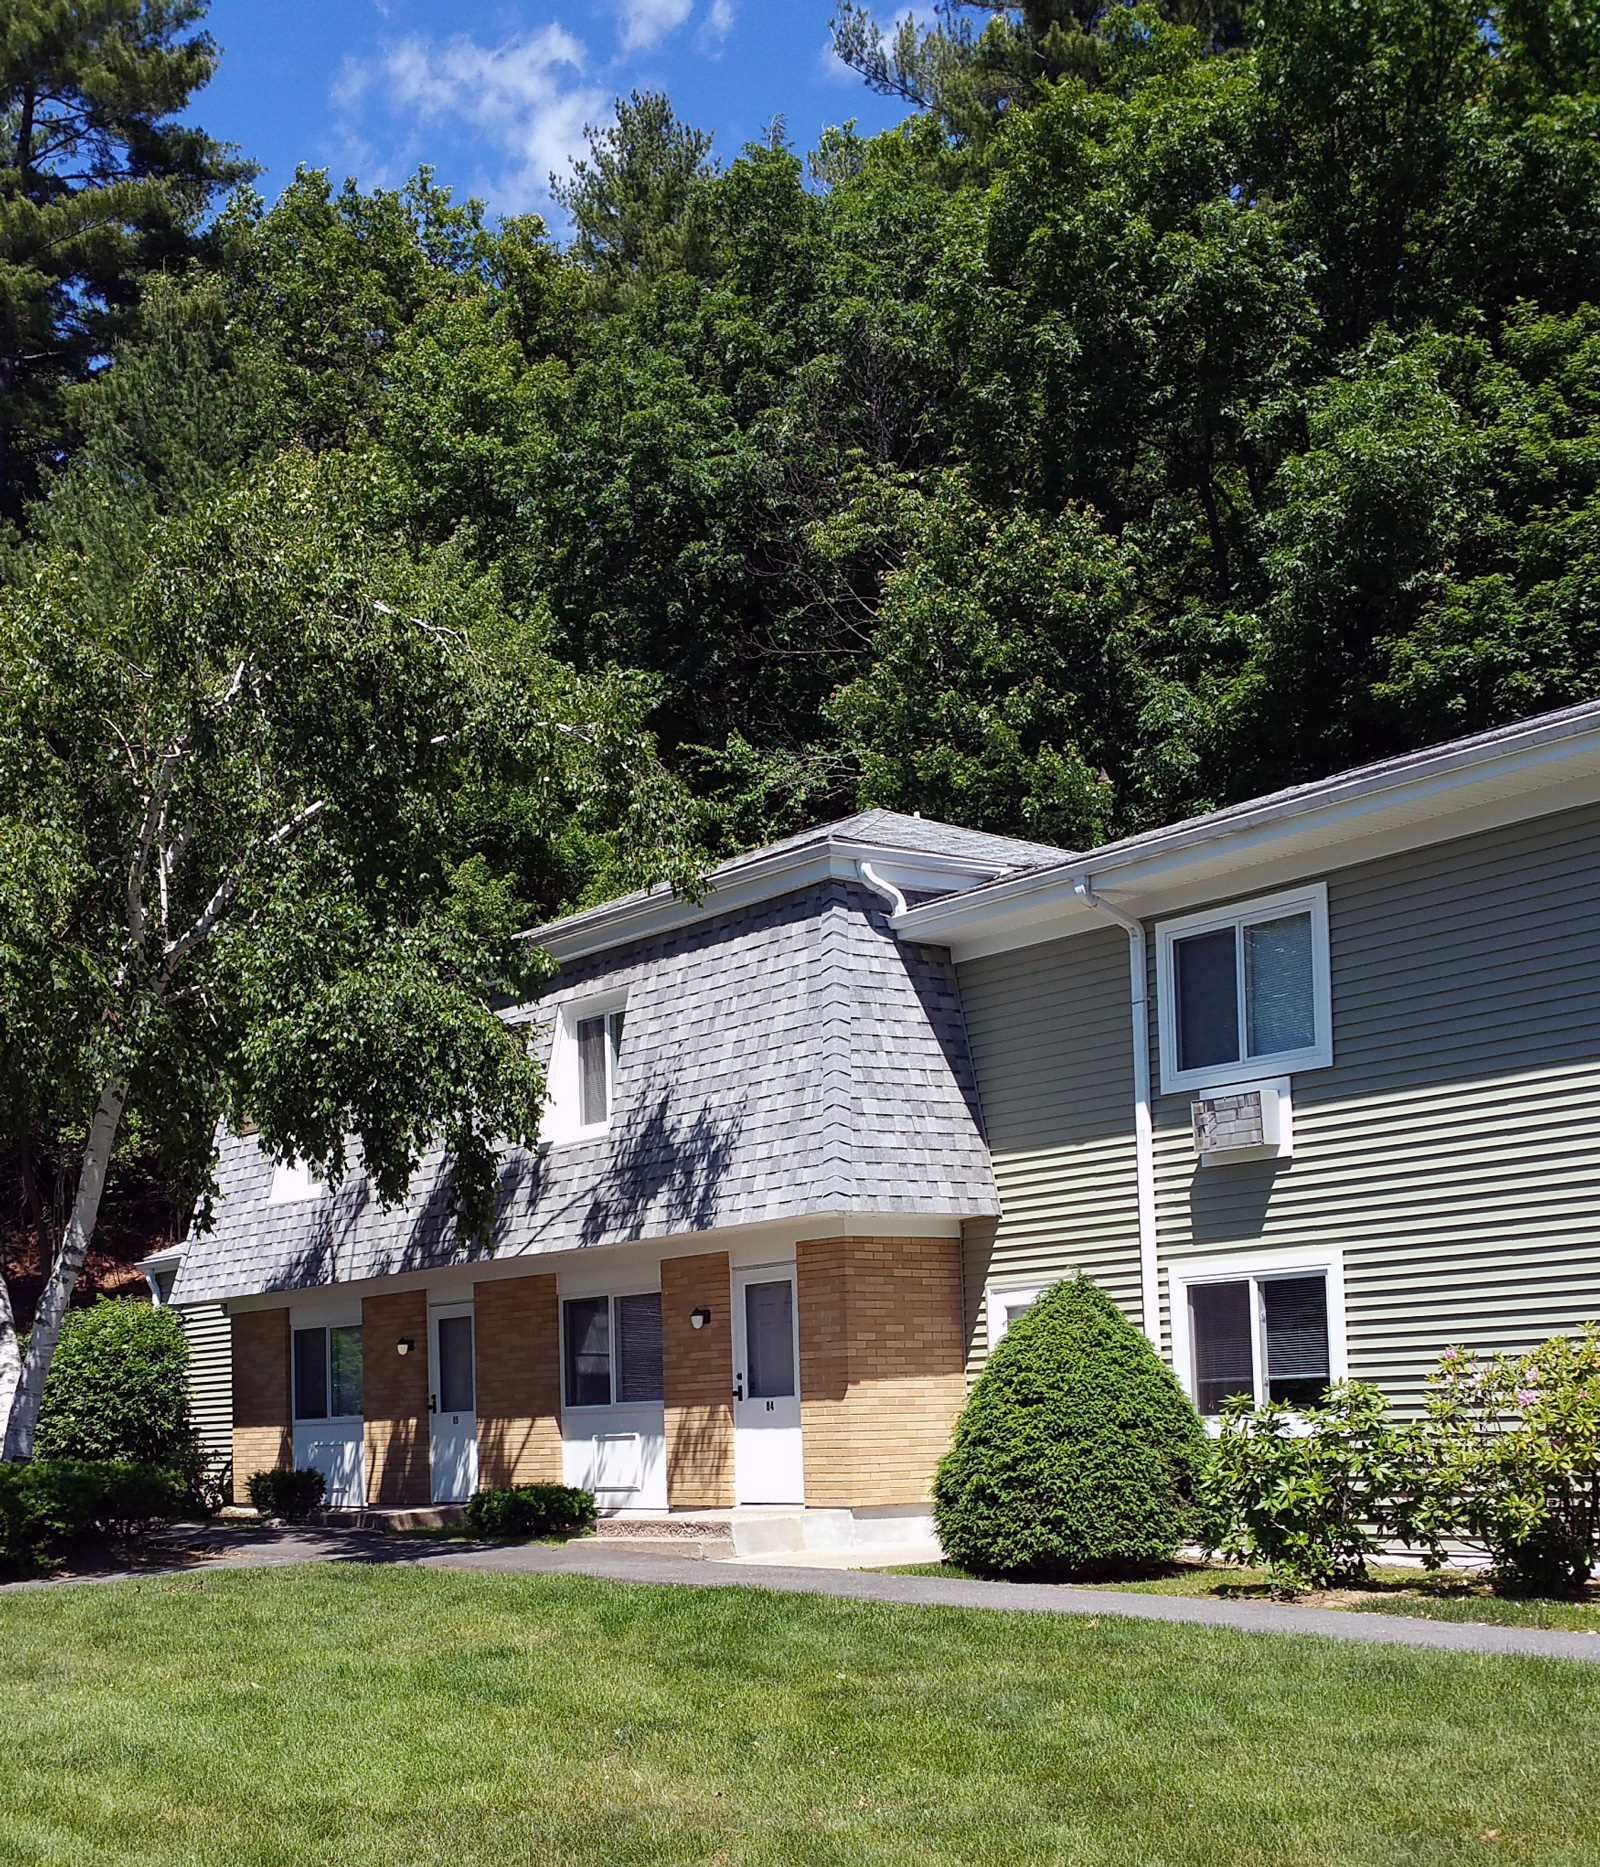 1A Rolling Green Dr., Amherst